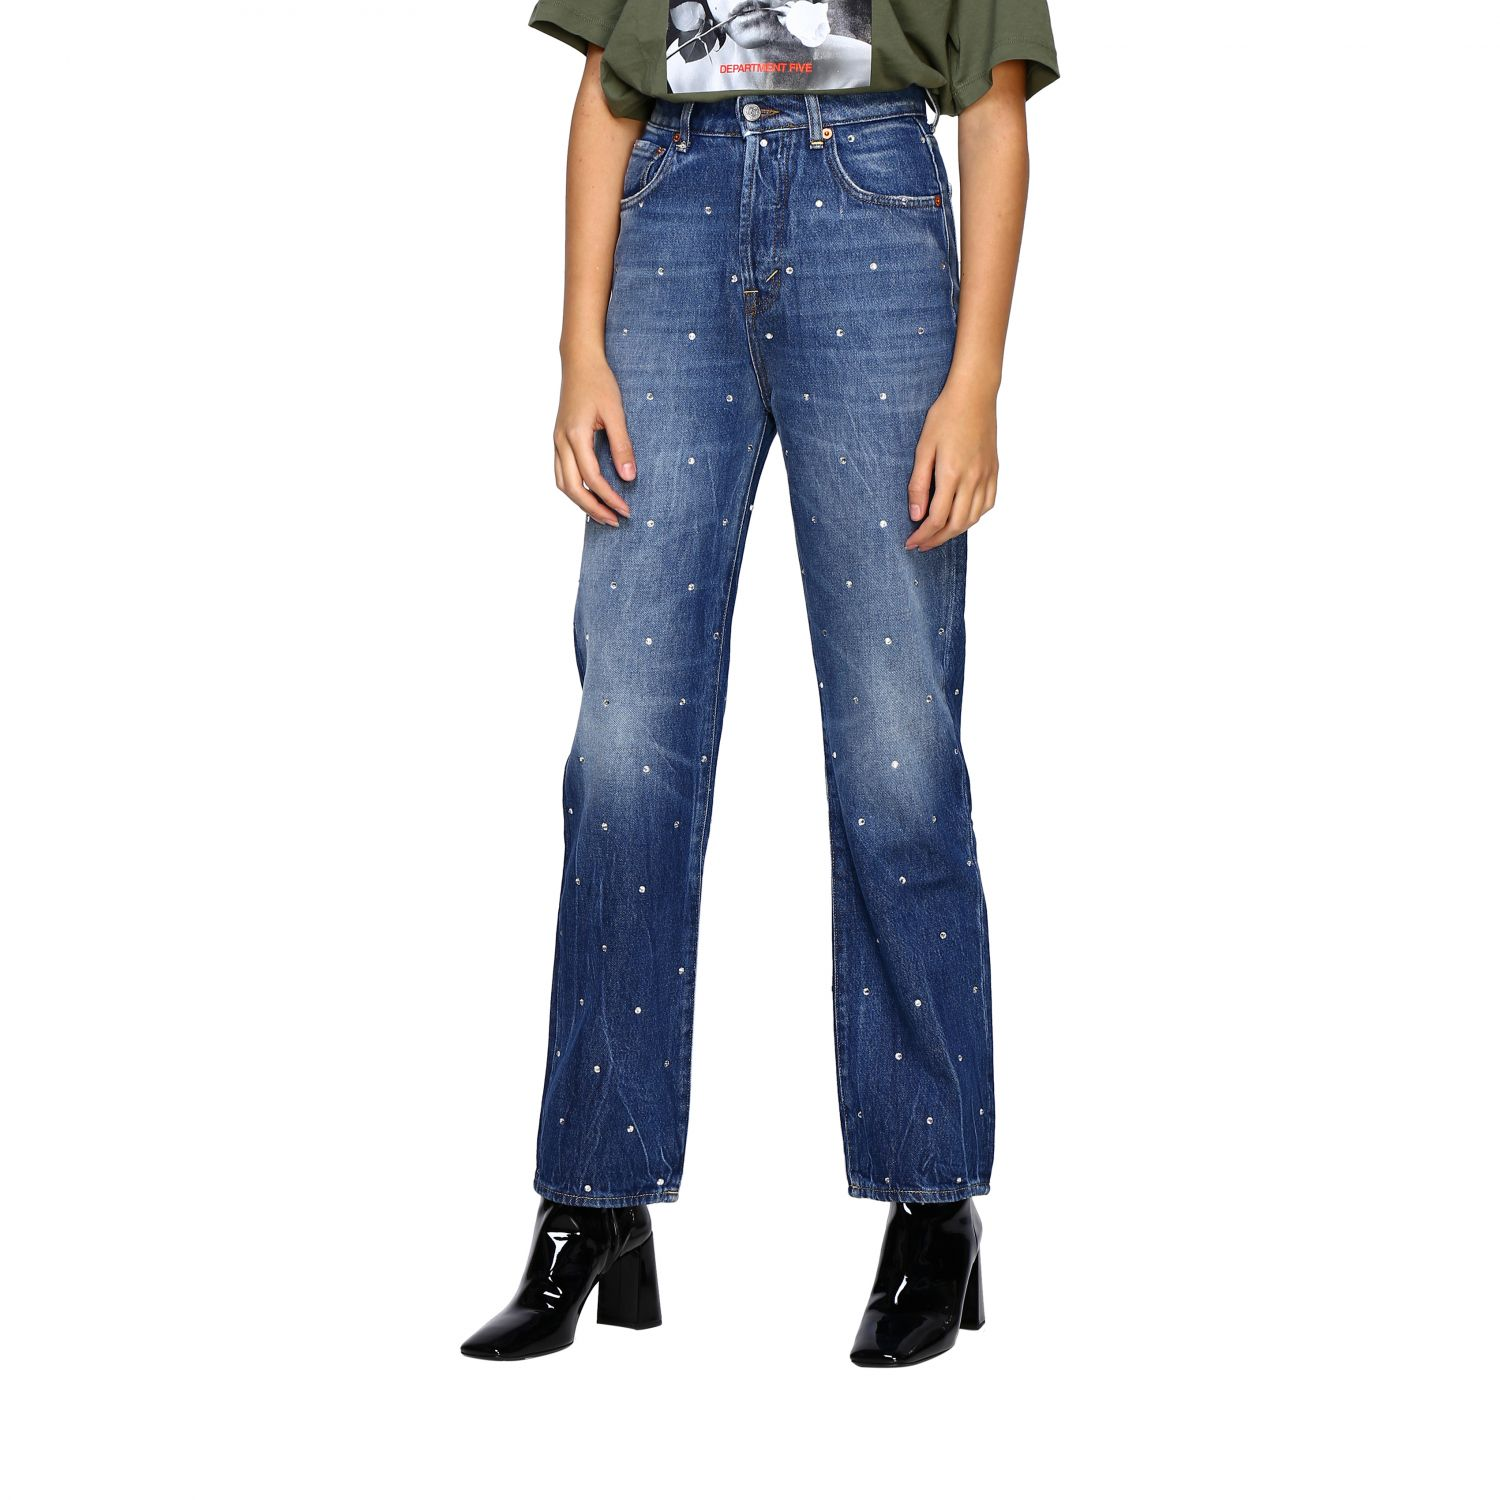 Jeans women Department 5 blue 4